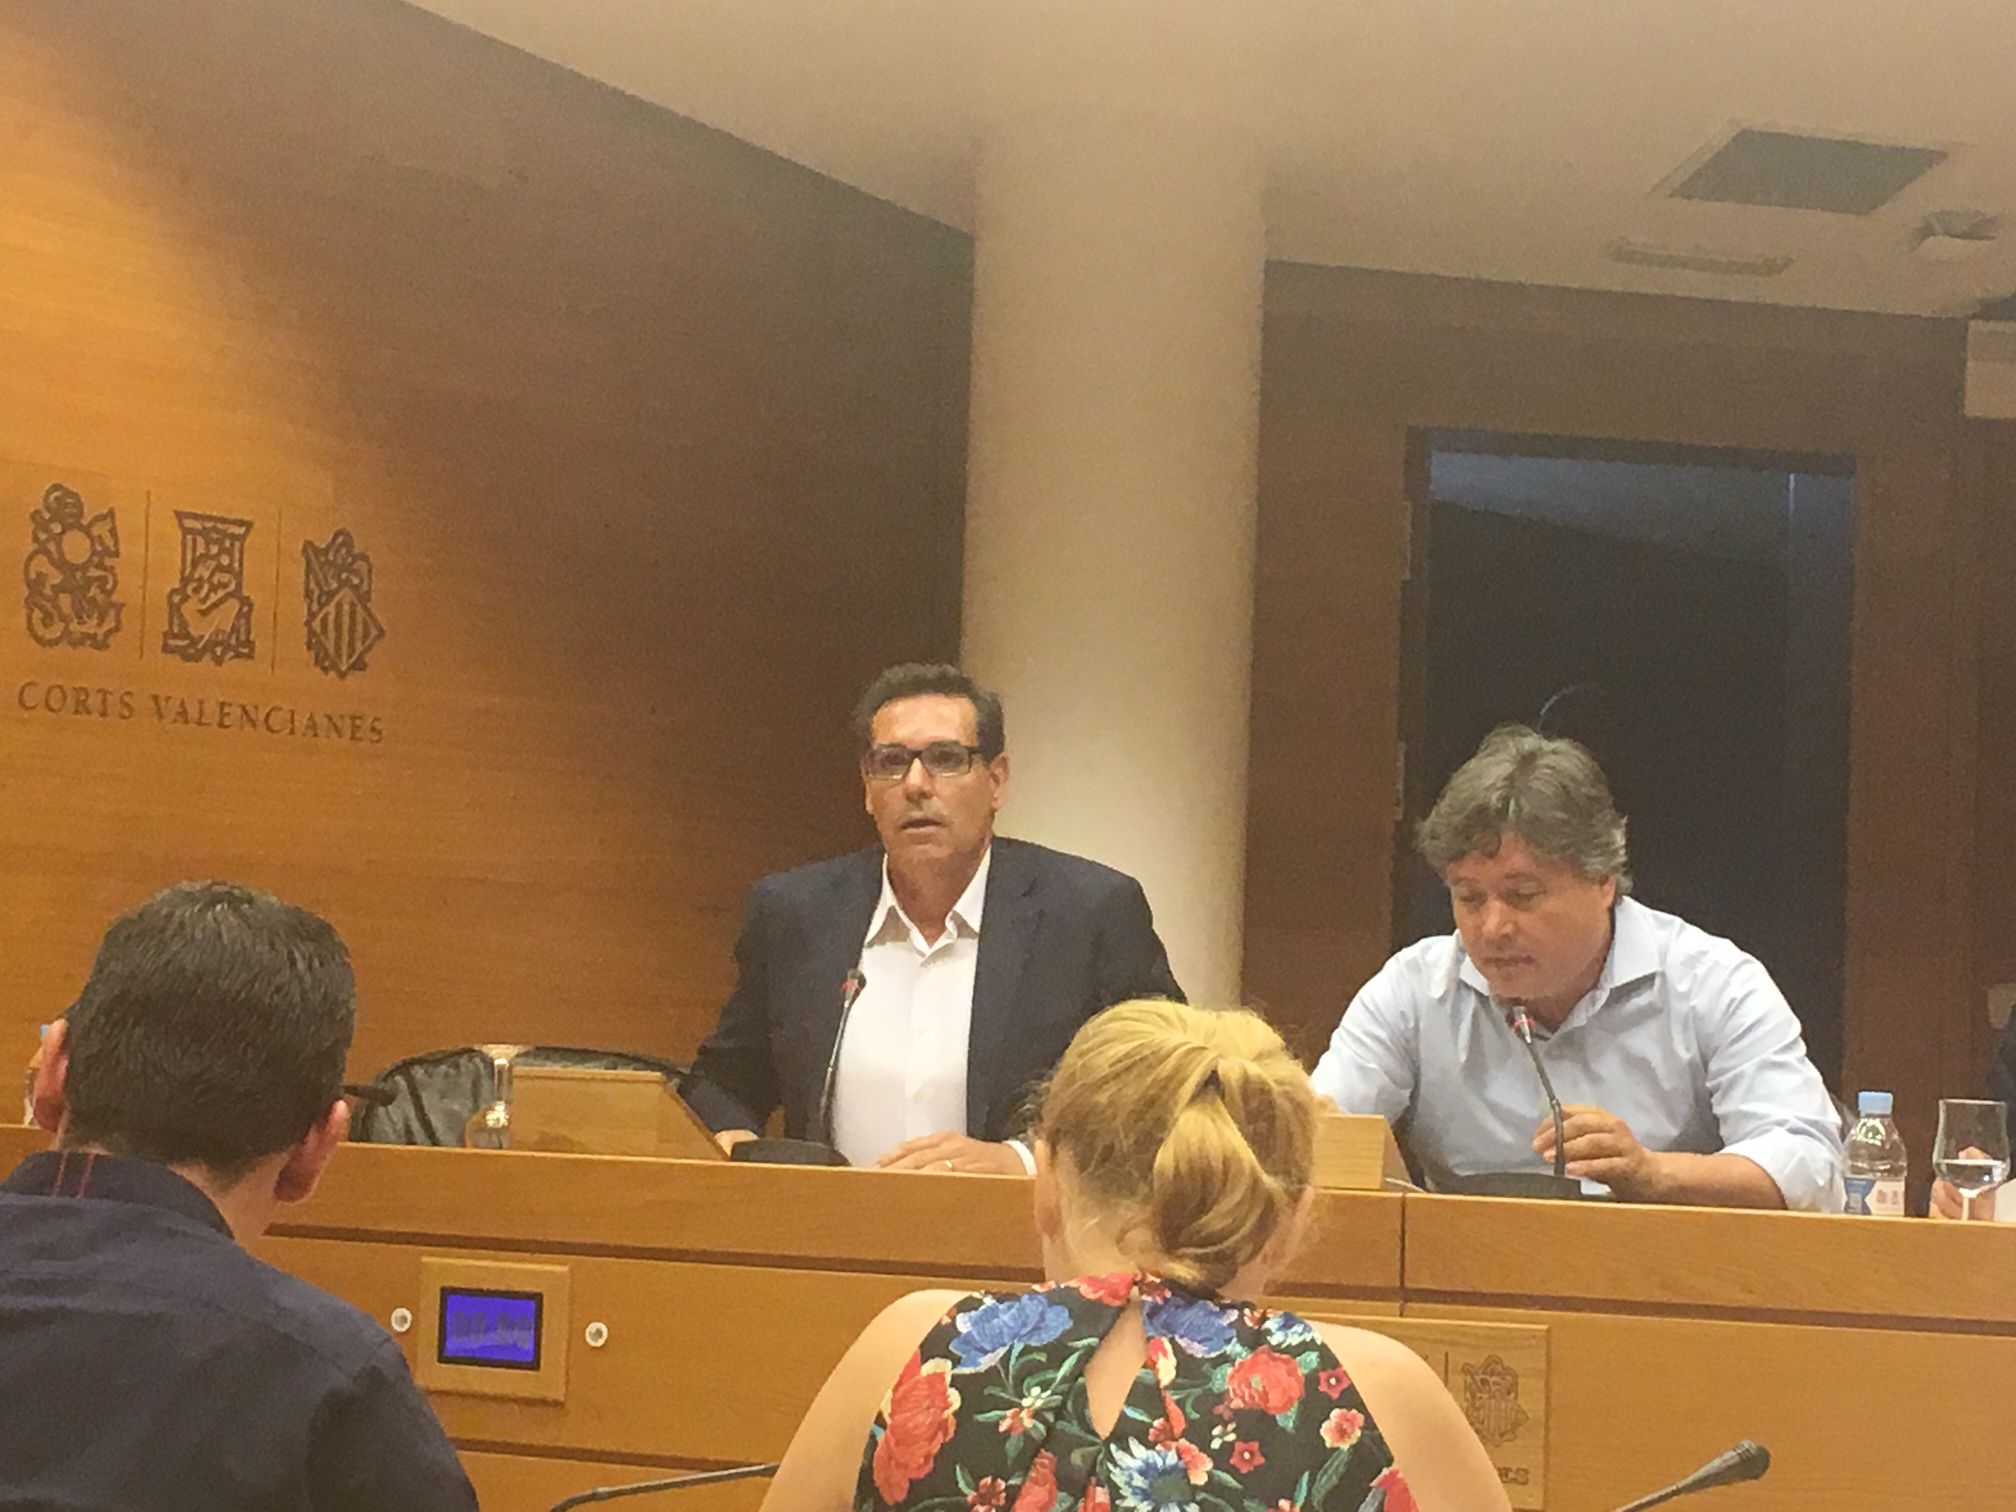 Fco Martin Ucles Presidente Siprojefes en Cortes Vlc